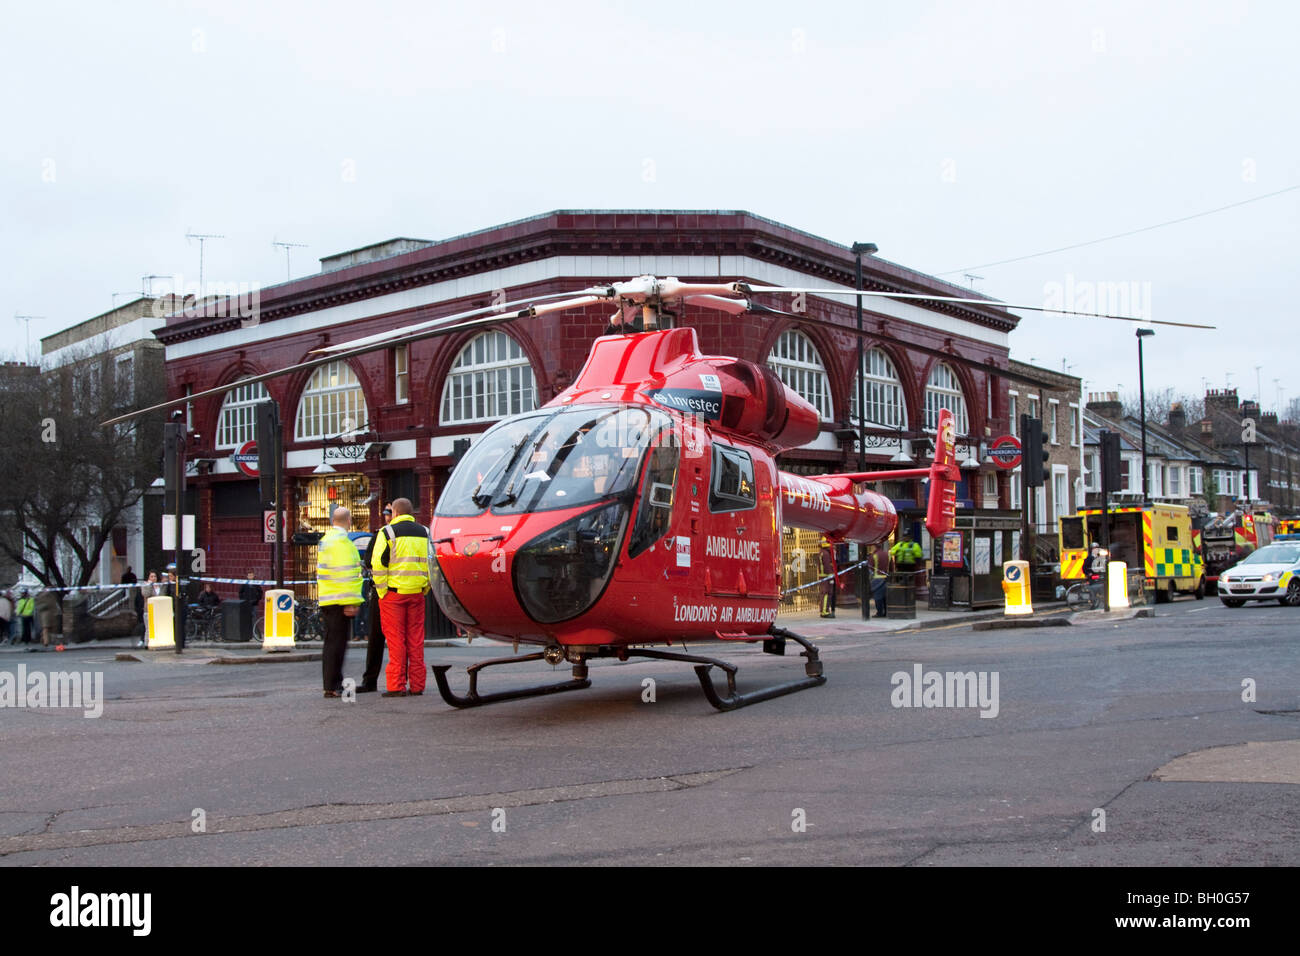 London Air Ambulance - Helicopter Emergency Medical Service (HEMS) - Tufnell Park Underground Station - London - Stock Image